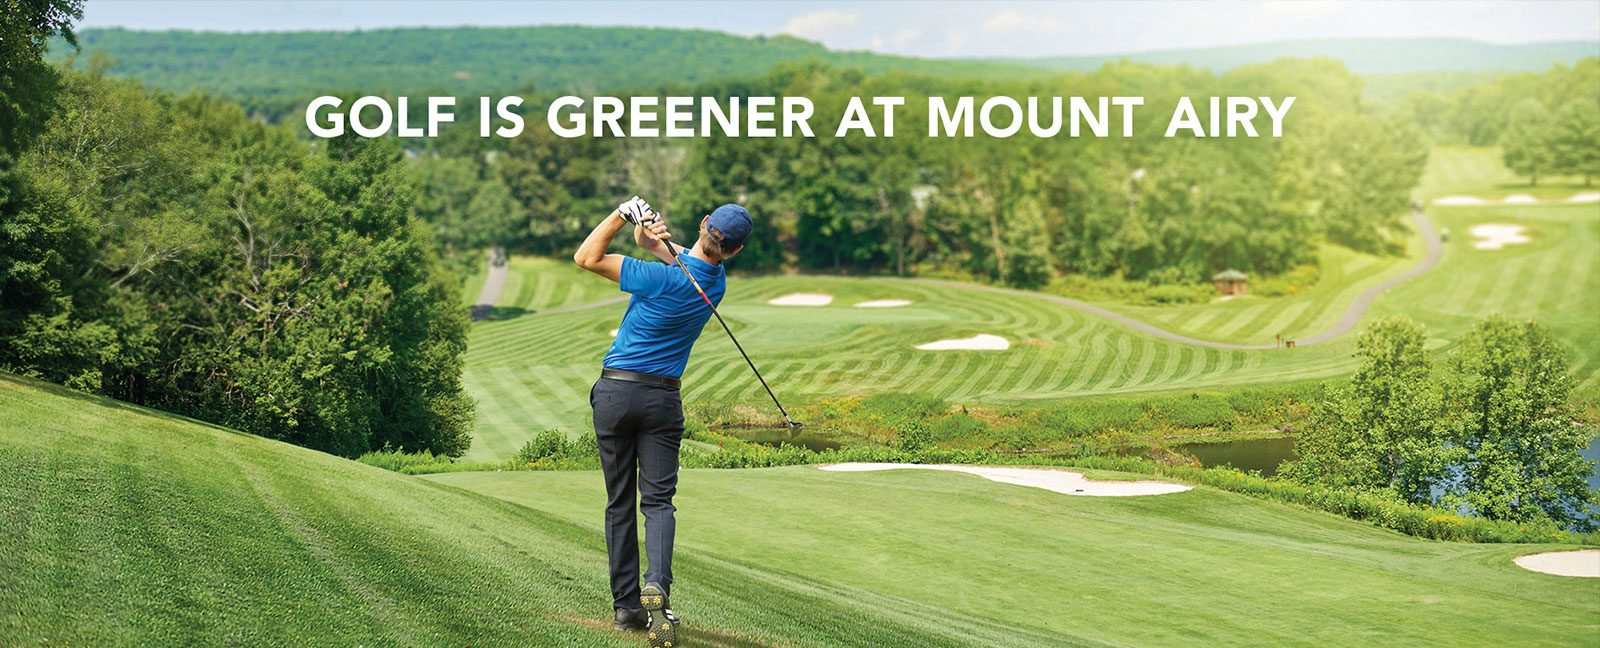 golf is greener at mt airy